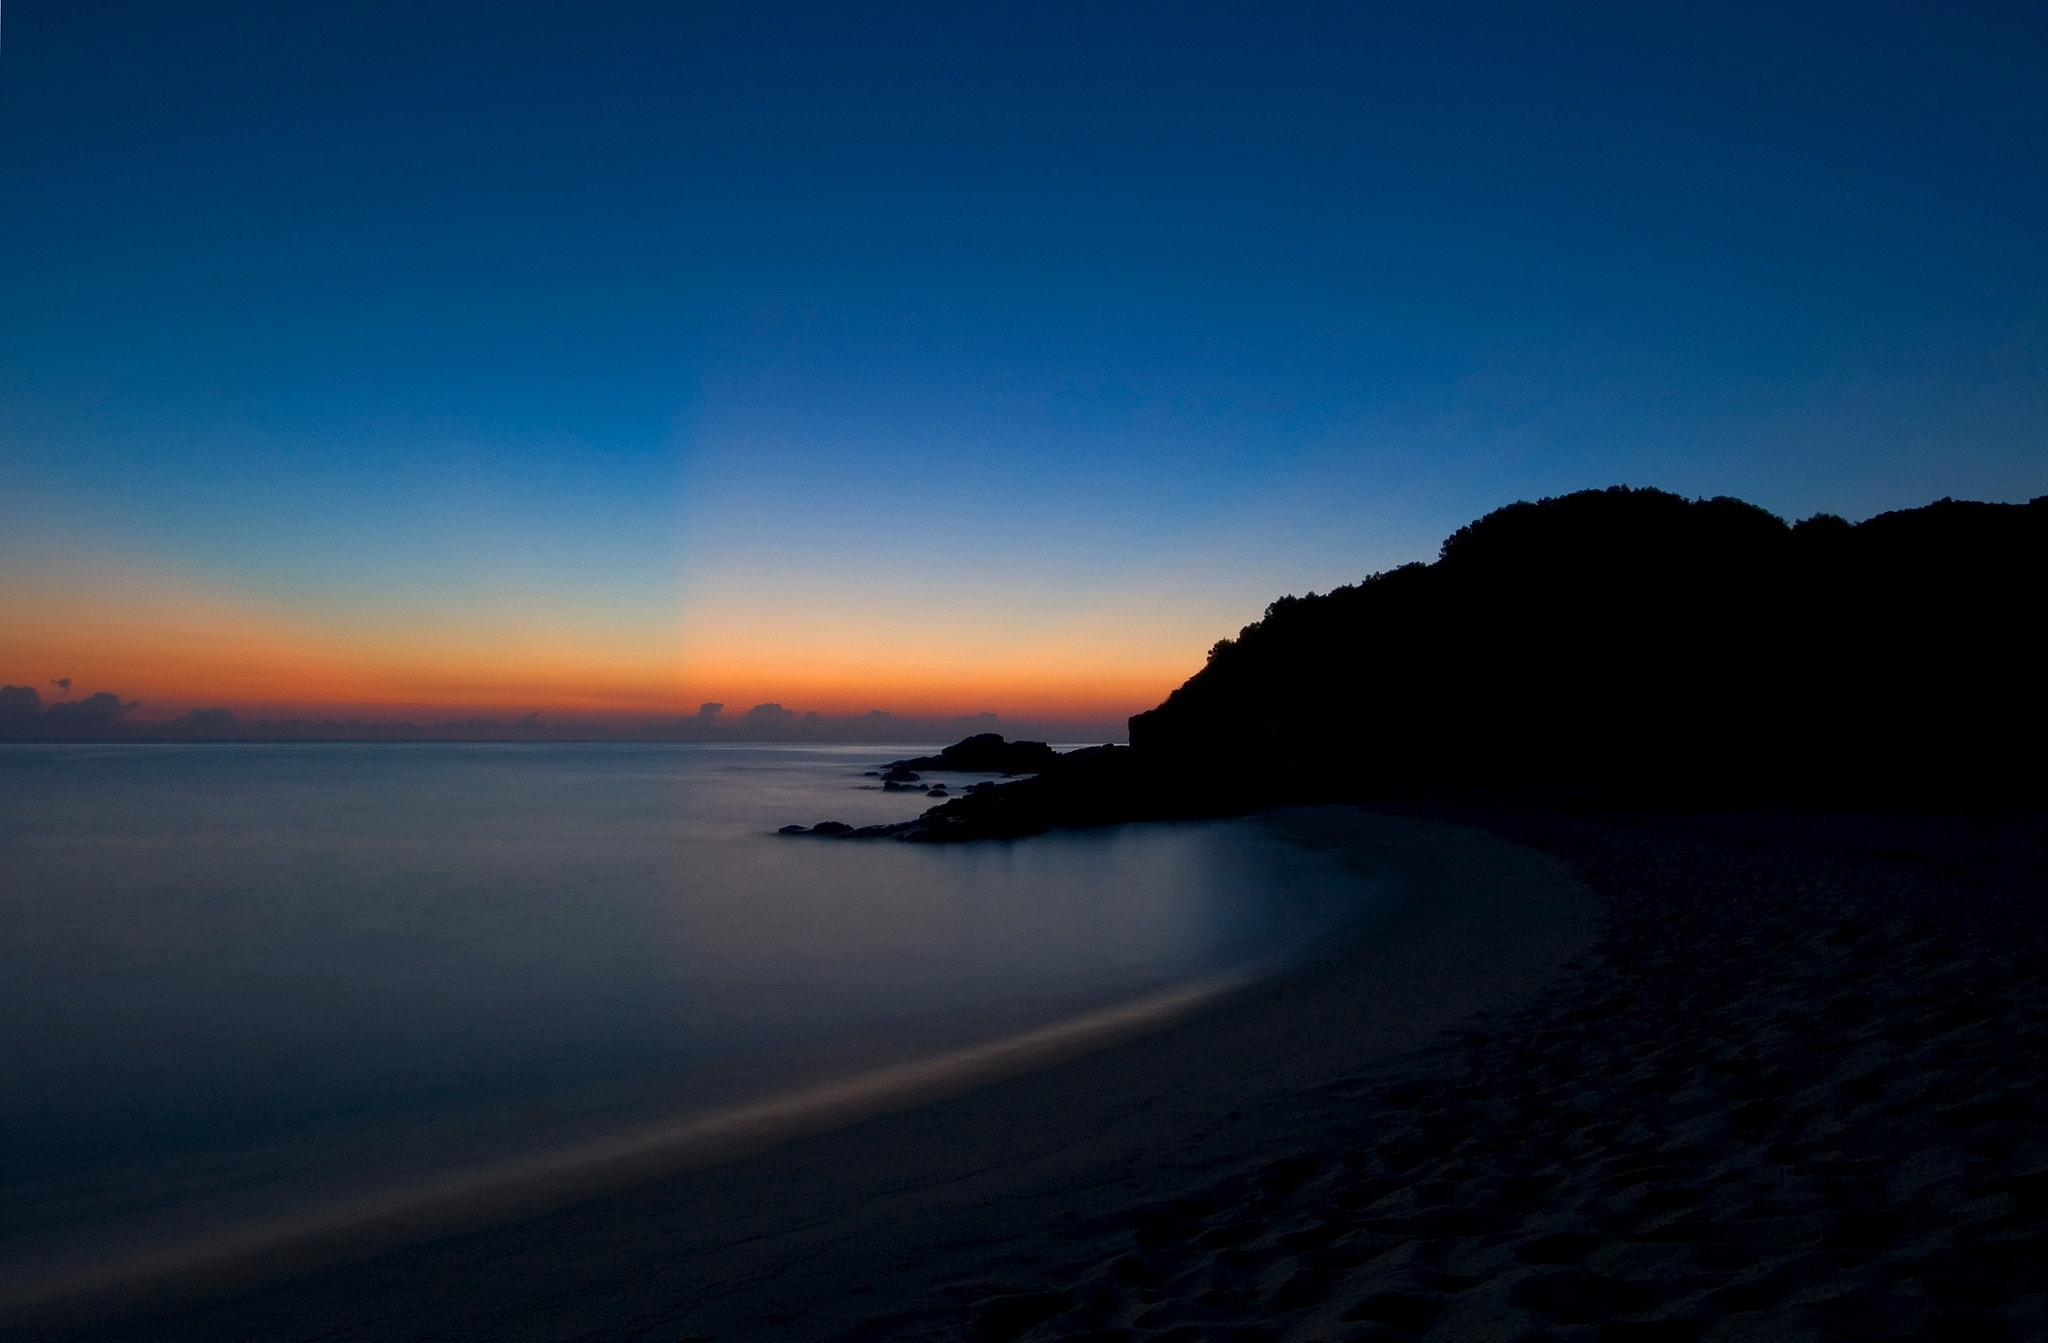 Photograph Wake up Cala Sinzias! by stefanocarda on 500px